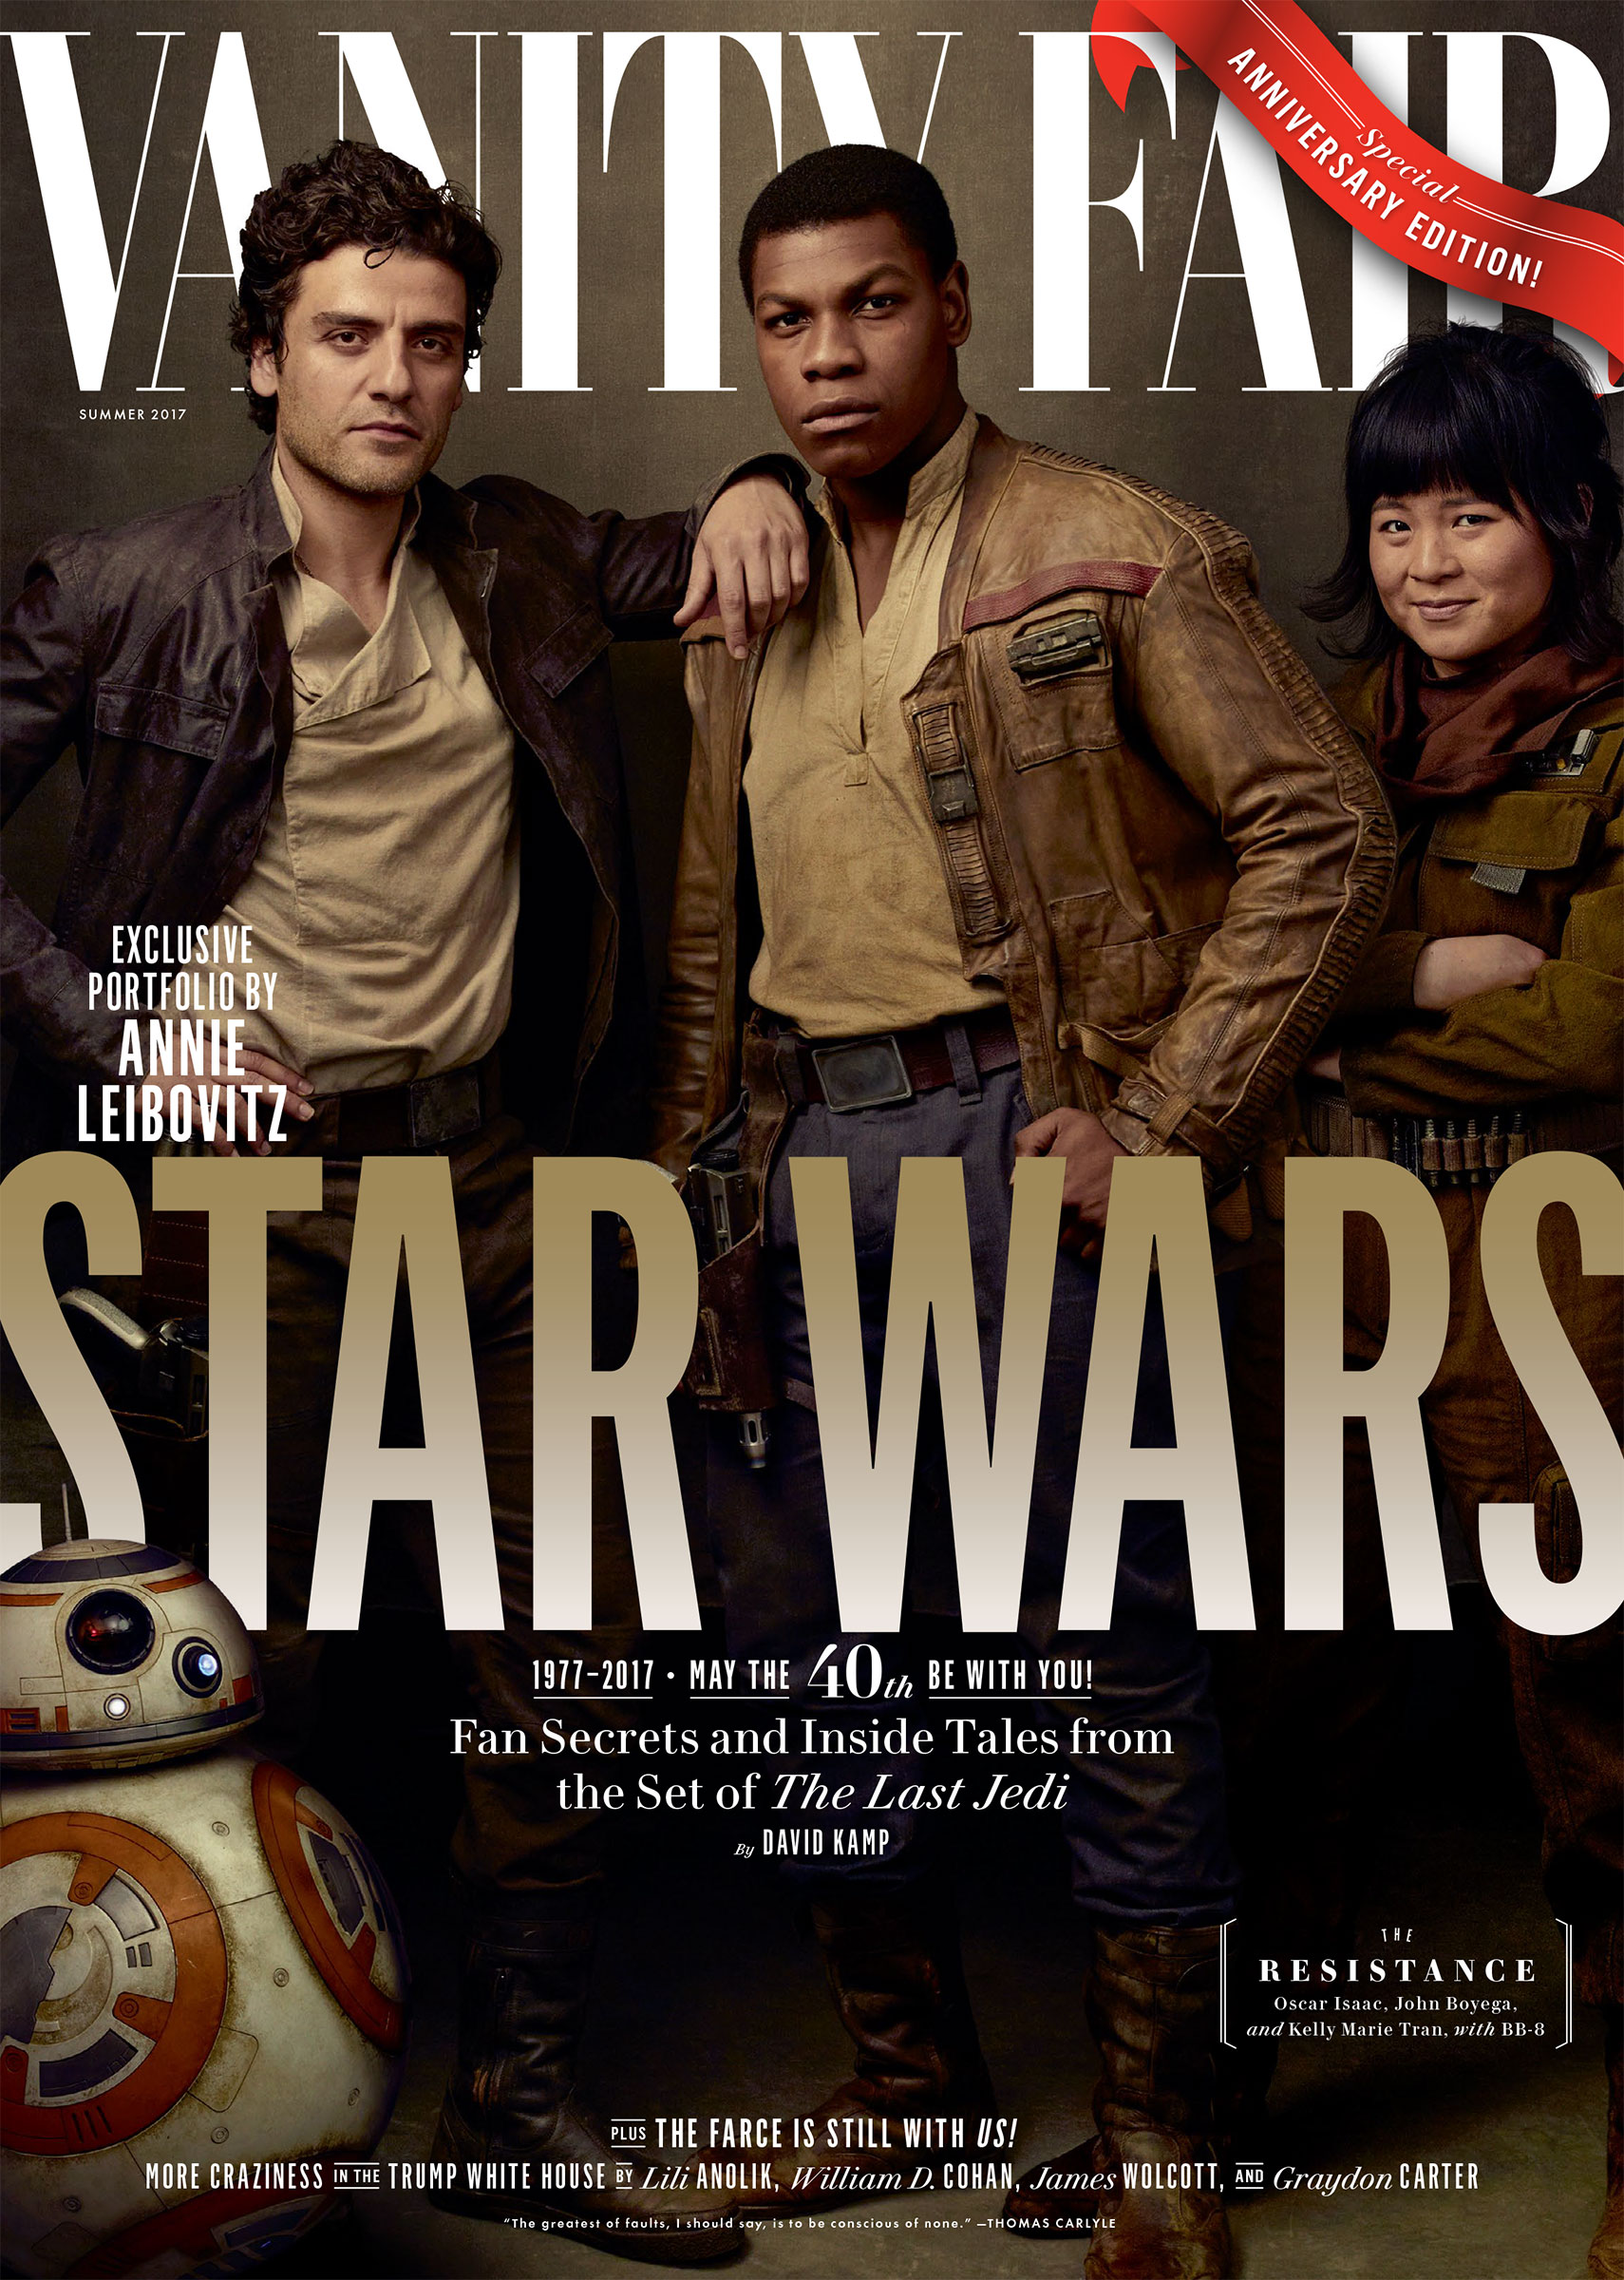 Vanity_Fair_Star_Wars_Leibovitz_coverC